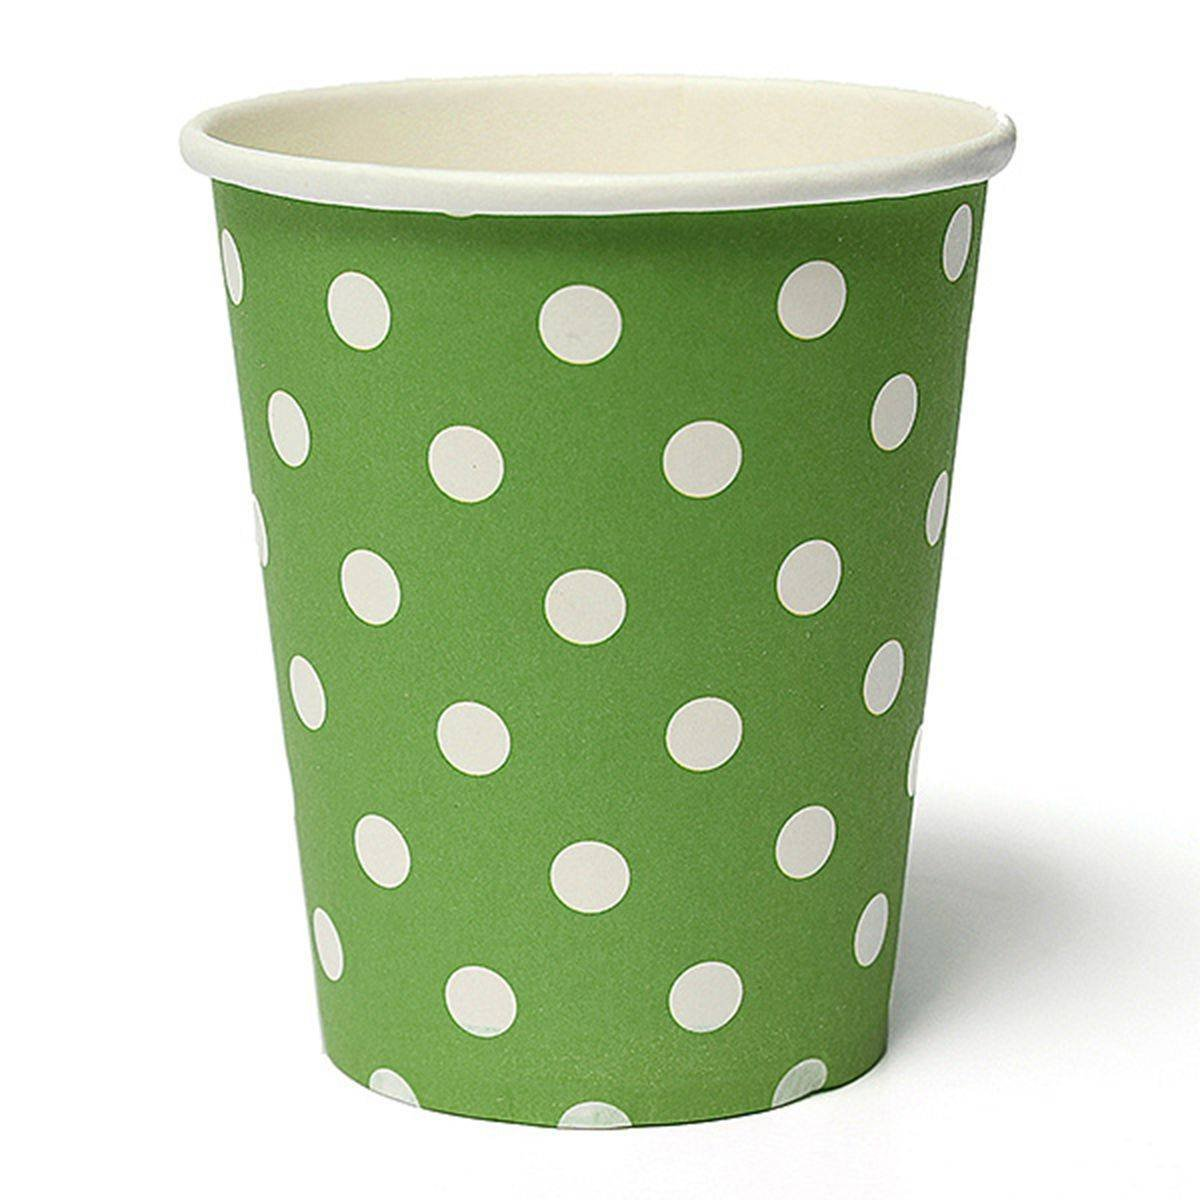 THZY 50pcs Polka Dot Paper Paper Cups Case Disposable Tableware Wedding Birthday Decorations Green